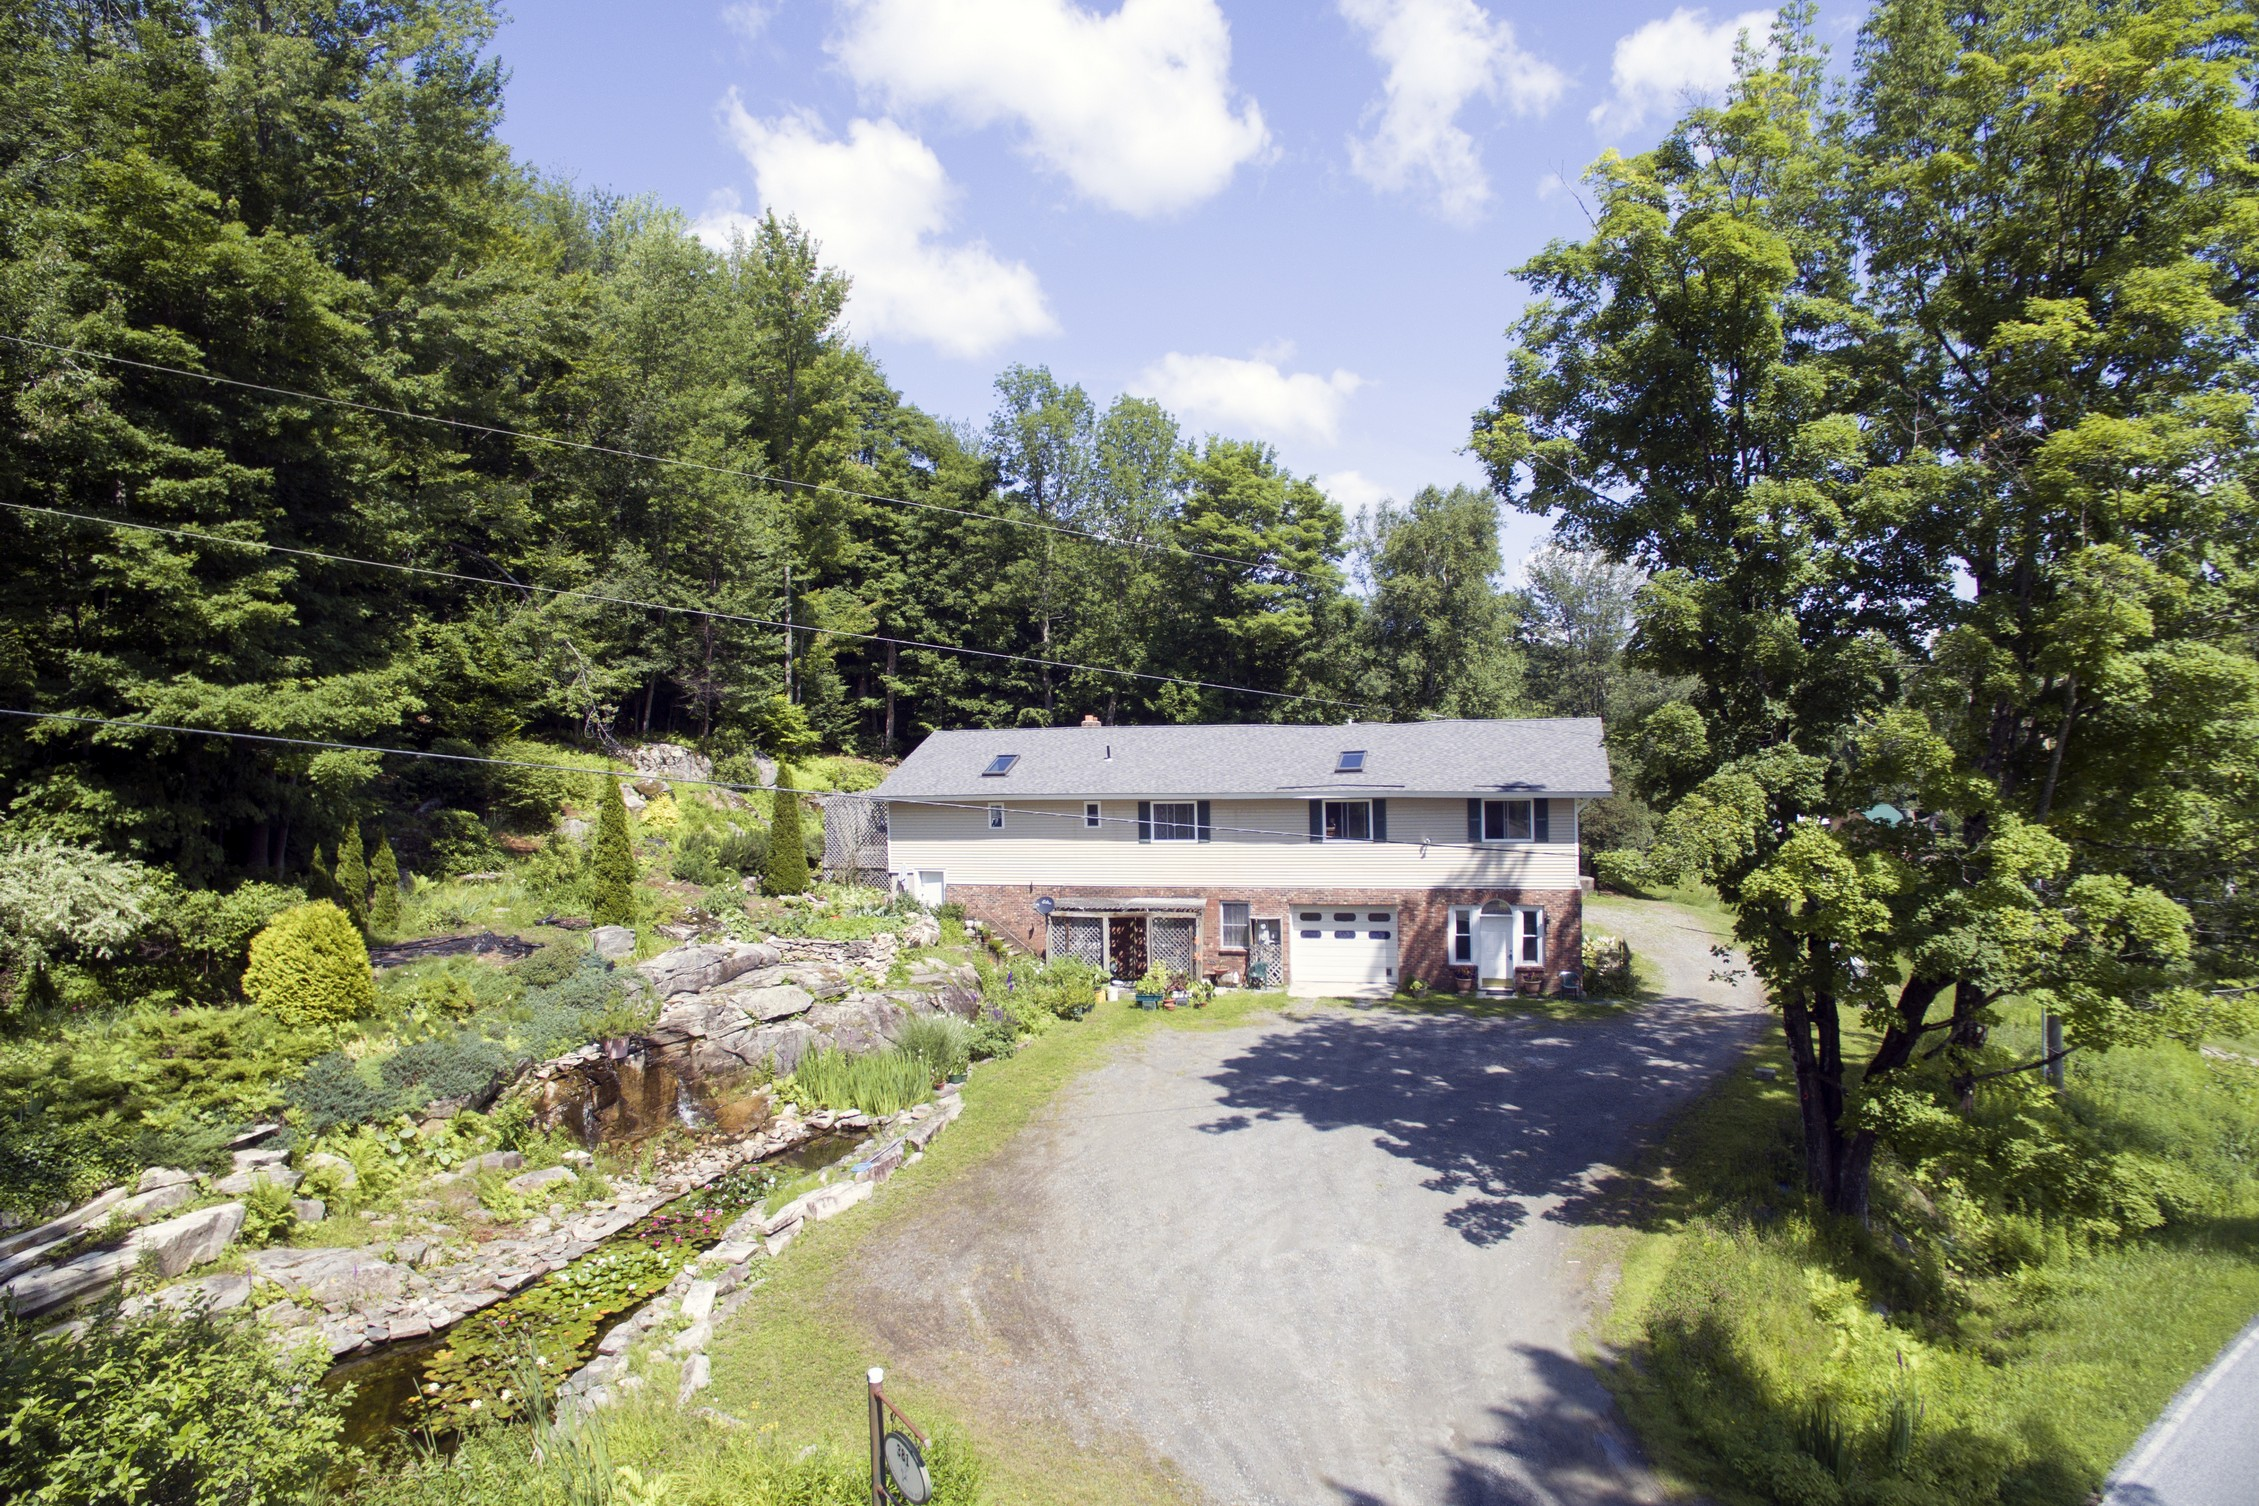 Single Family Home for Sale at 381 Winhall Hollow Road, Winhall 381 Winhall Hollow Rd Winhall, Vermont, 05340 United States